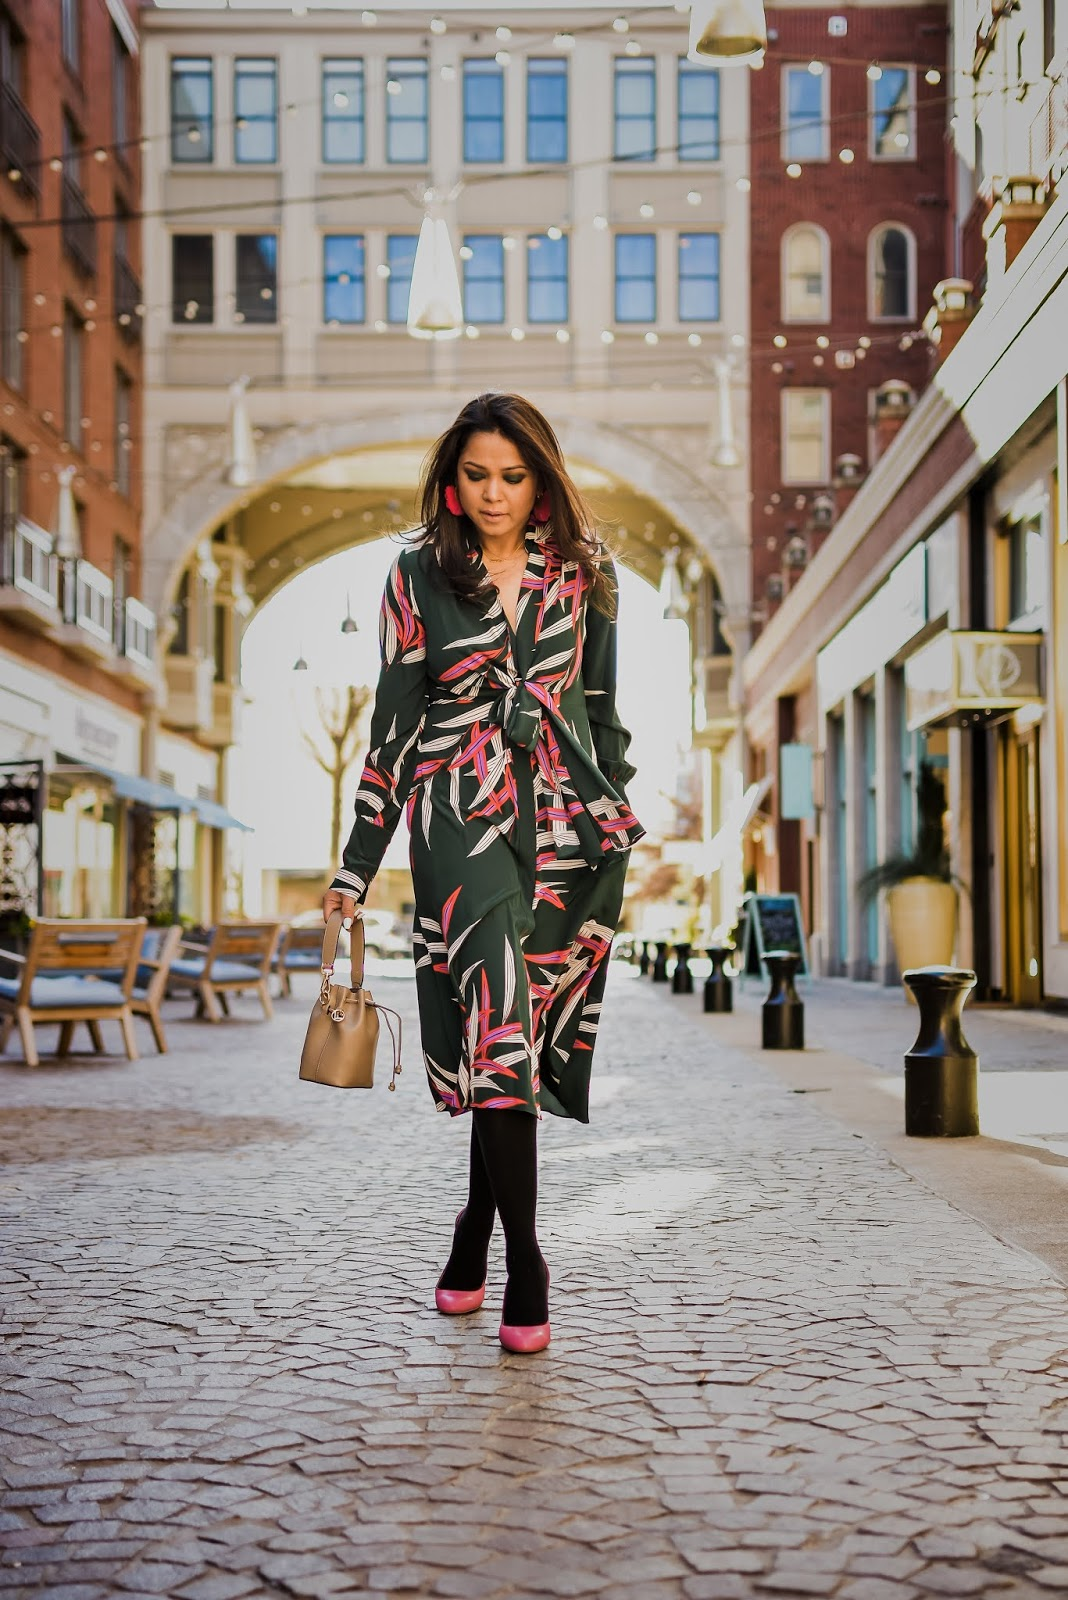 Diane Von Furstenburg hunter green wrap dress, winter fashion, bright colors, bethesda row, brights, street style, shoes of prey heels, myriad musings, saumya shiohare